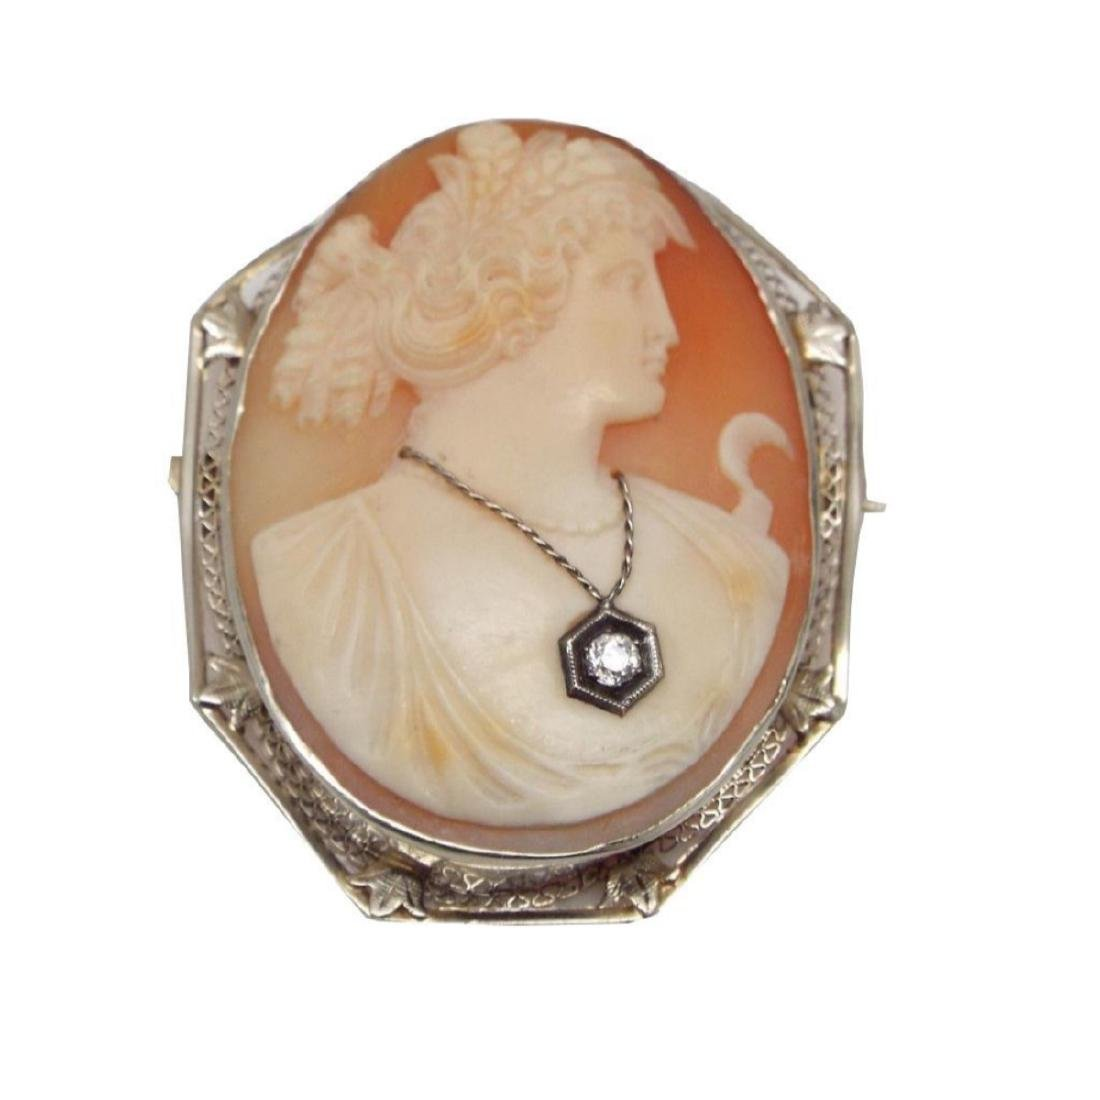 Antique 14kt White Gold Victorian Cameo Brooch - 3